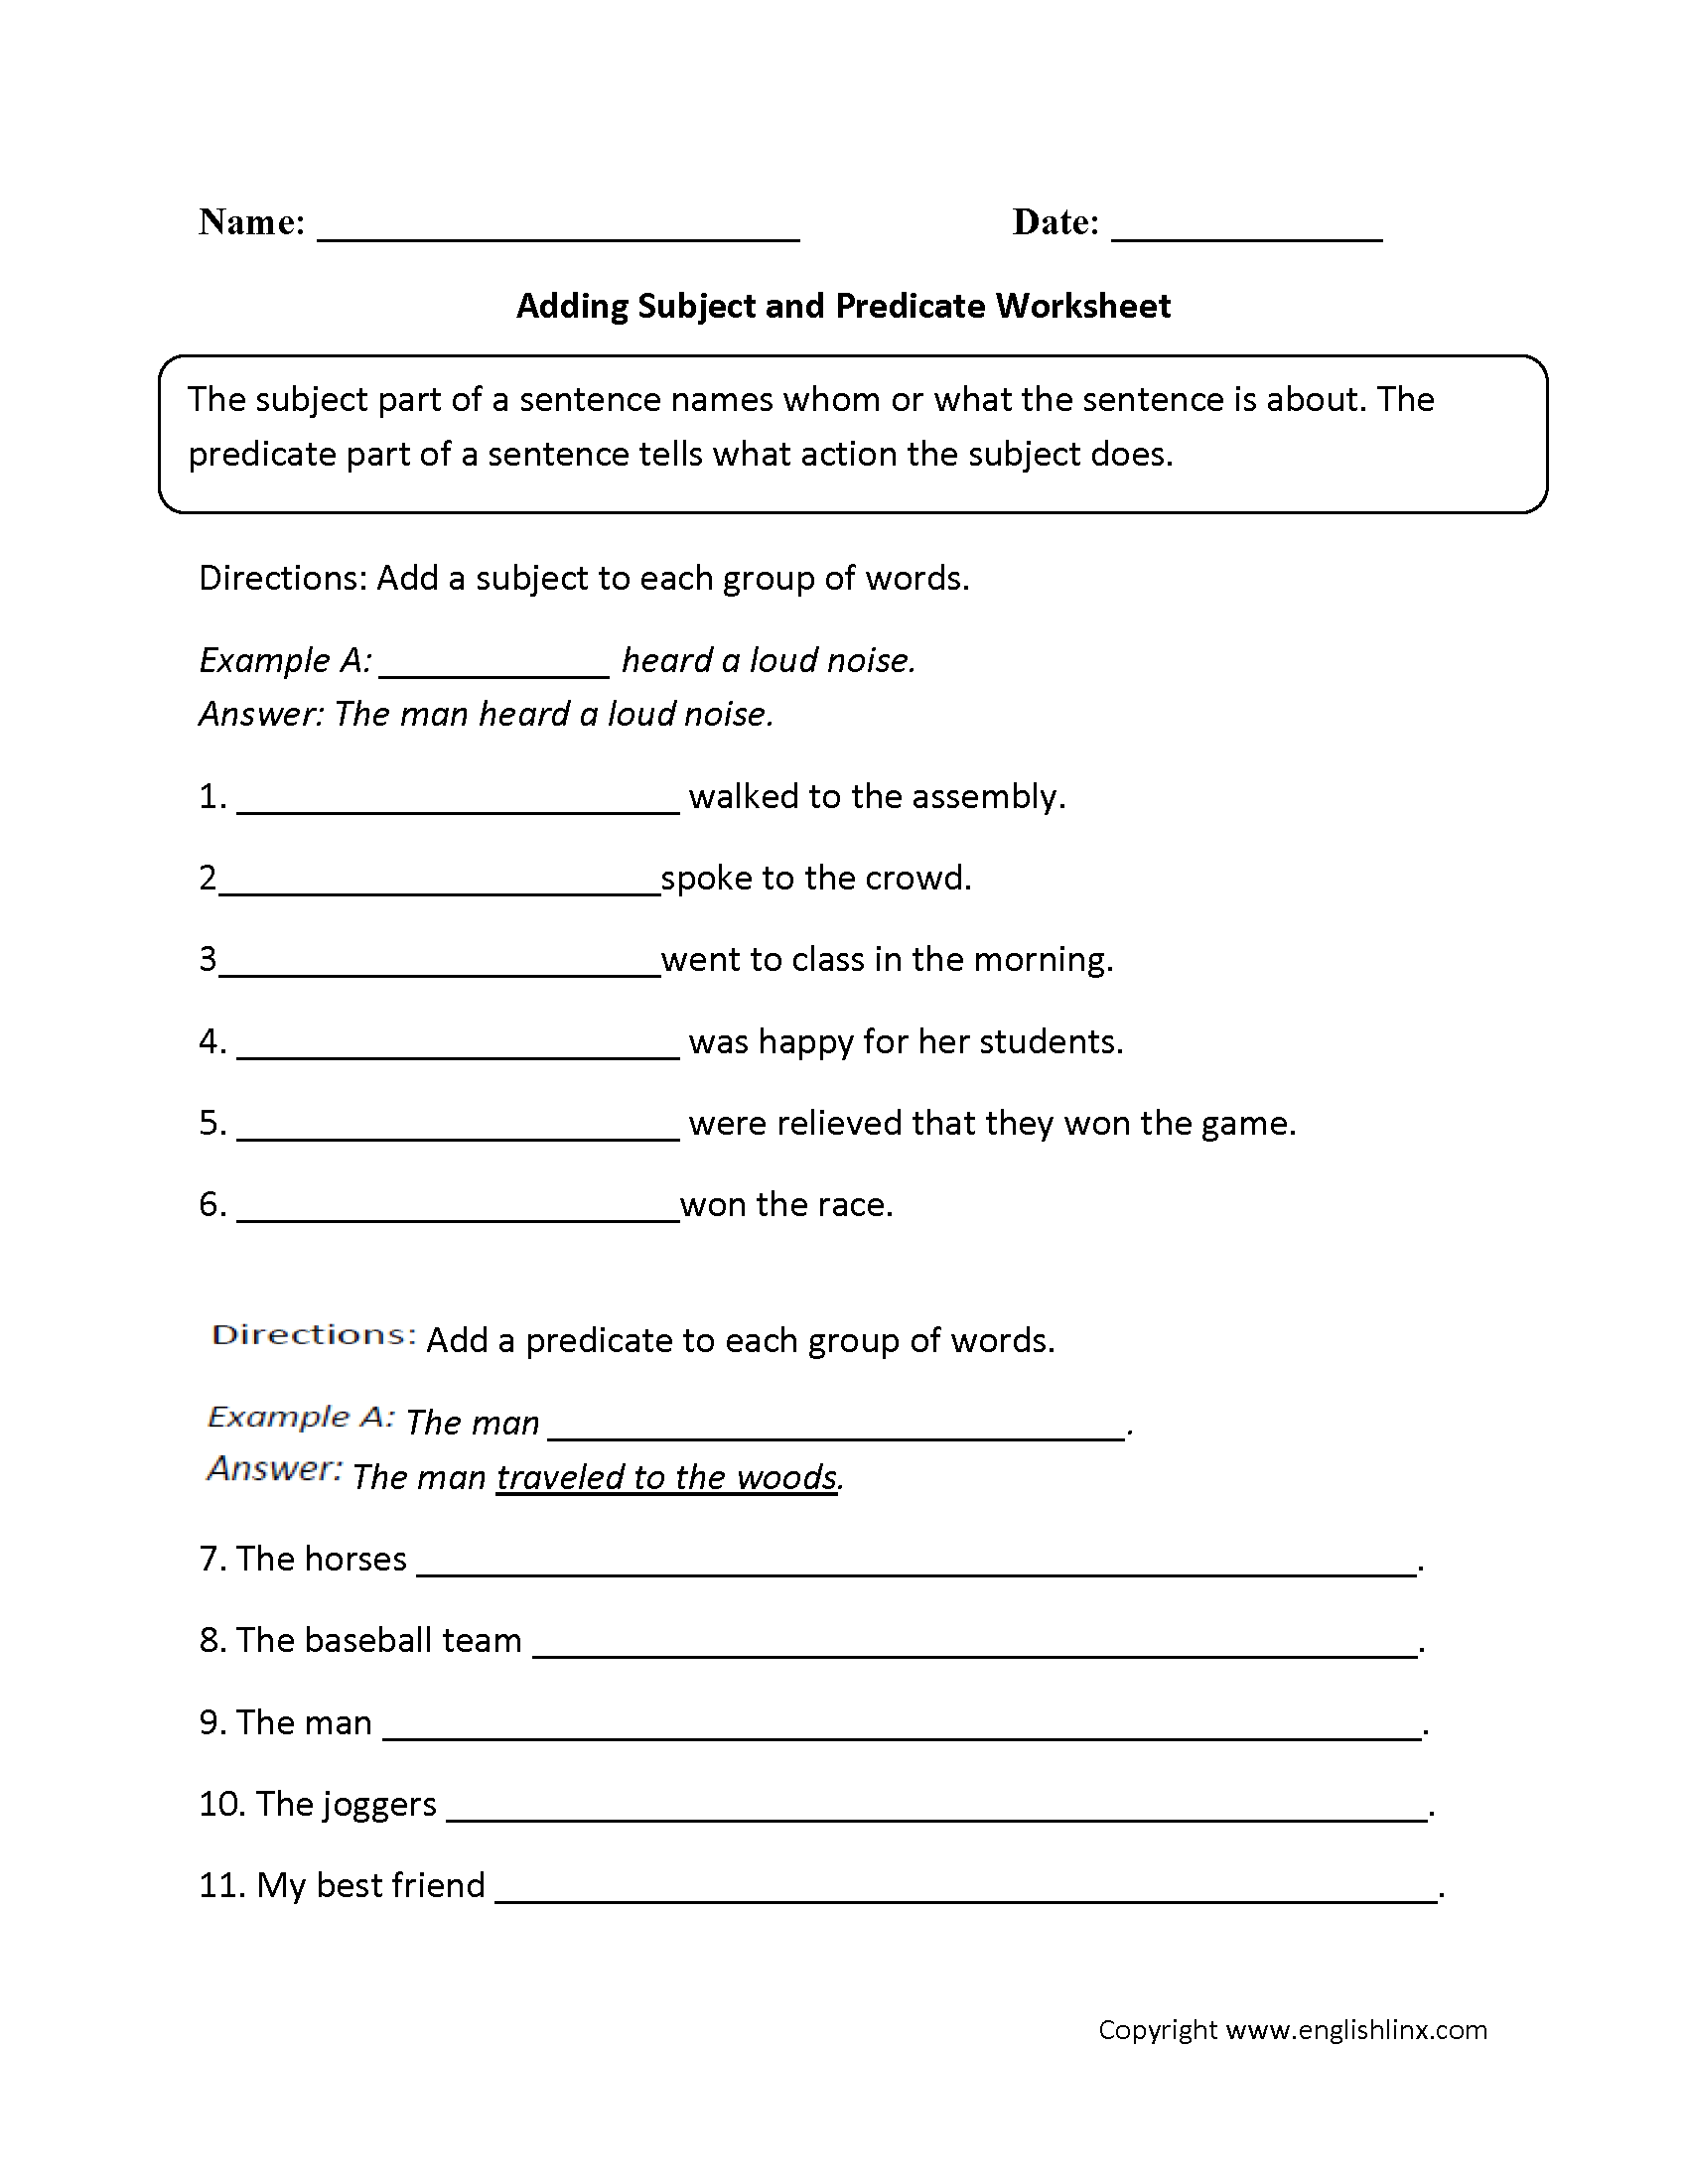 Worksheets Eighth Grade English Worksheets parts of a sentence worksheets subject and predicate adding predicateworksheet